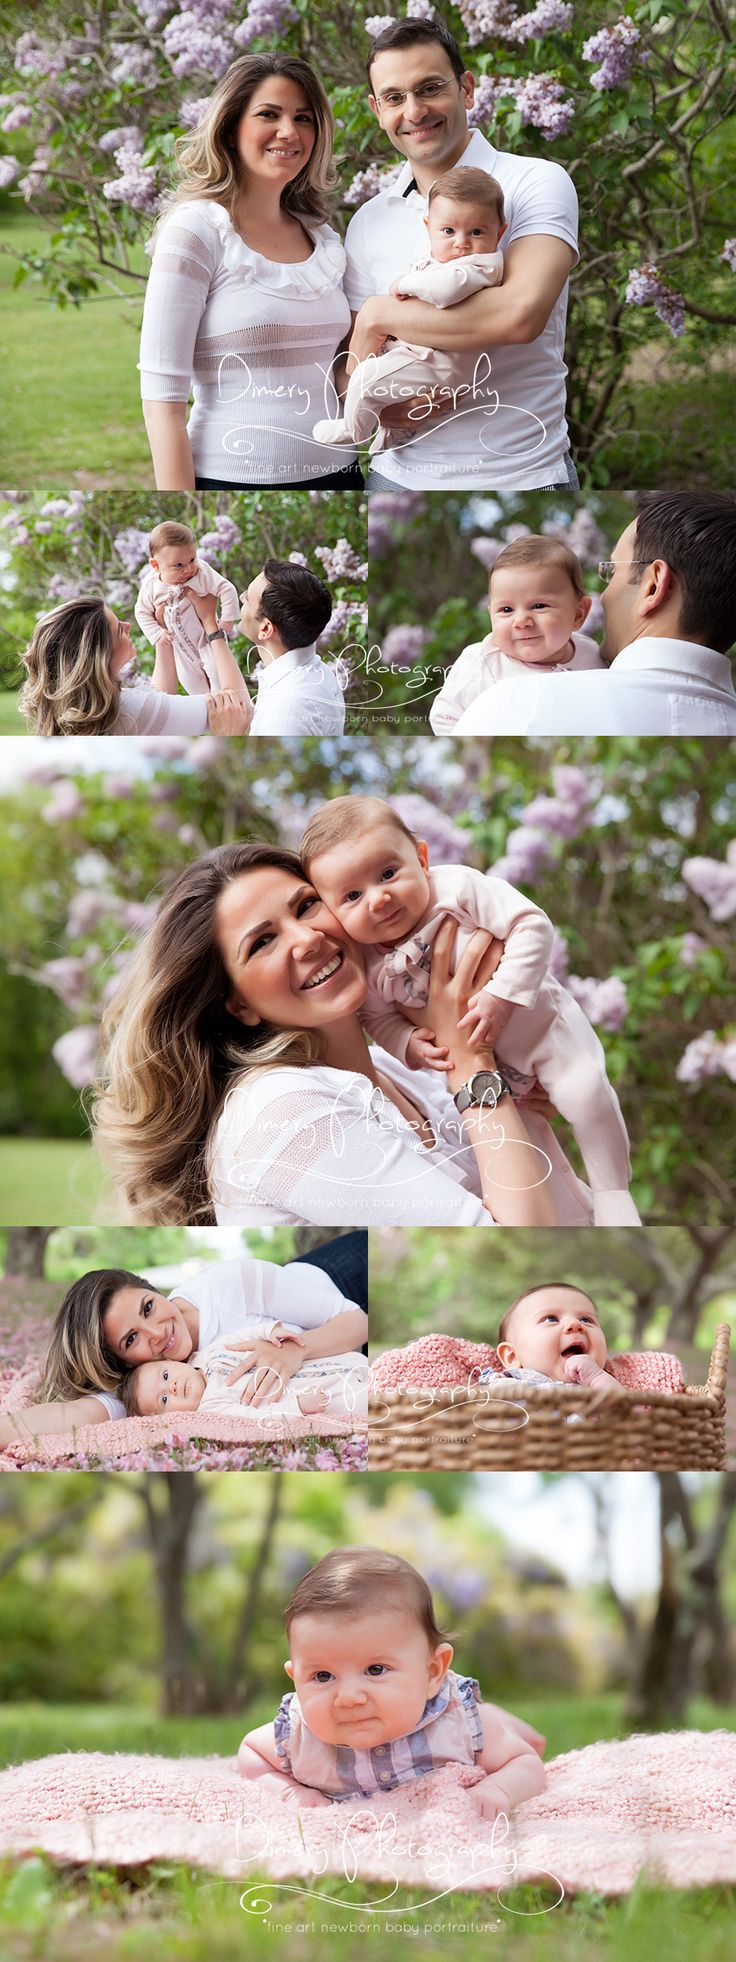 outdoor family portraits, family pictures, infant with mom and dad, outdoor baby photography © Dimery Photography 2014